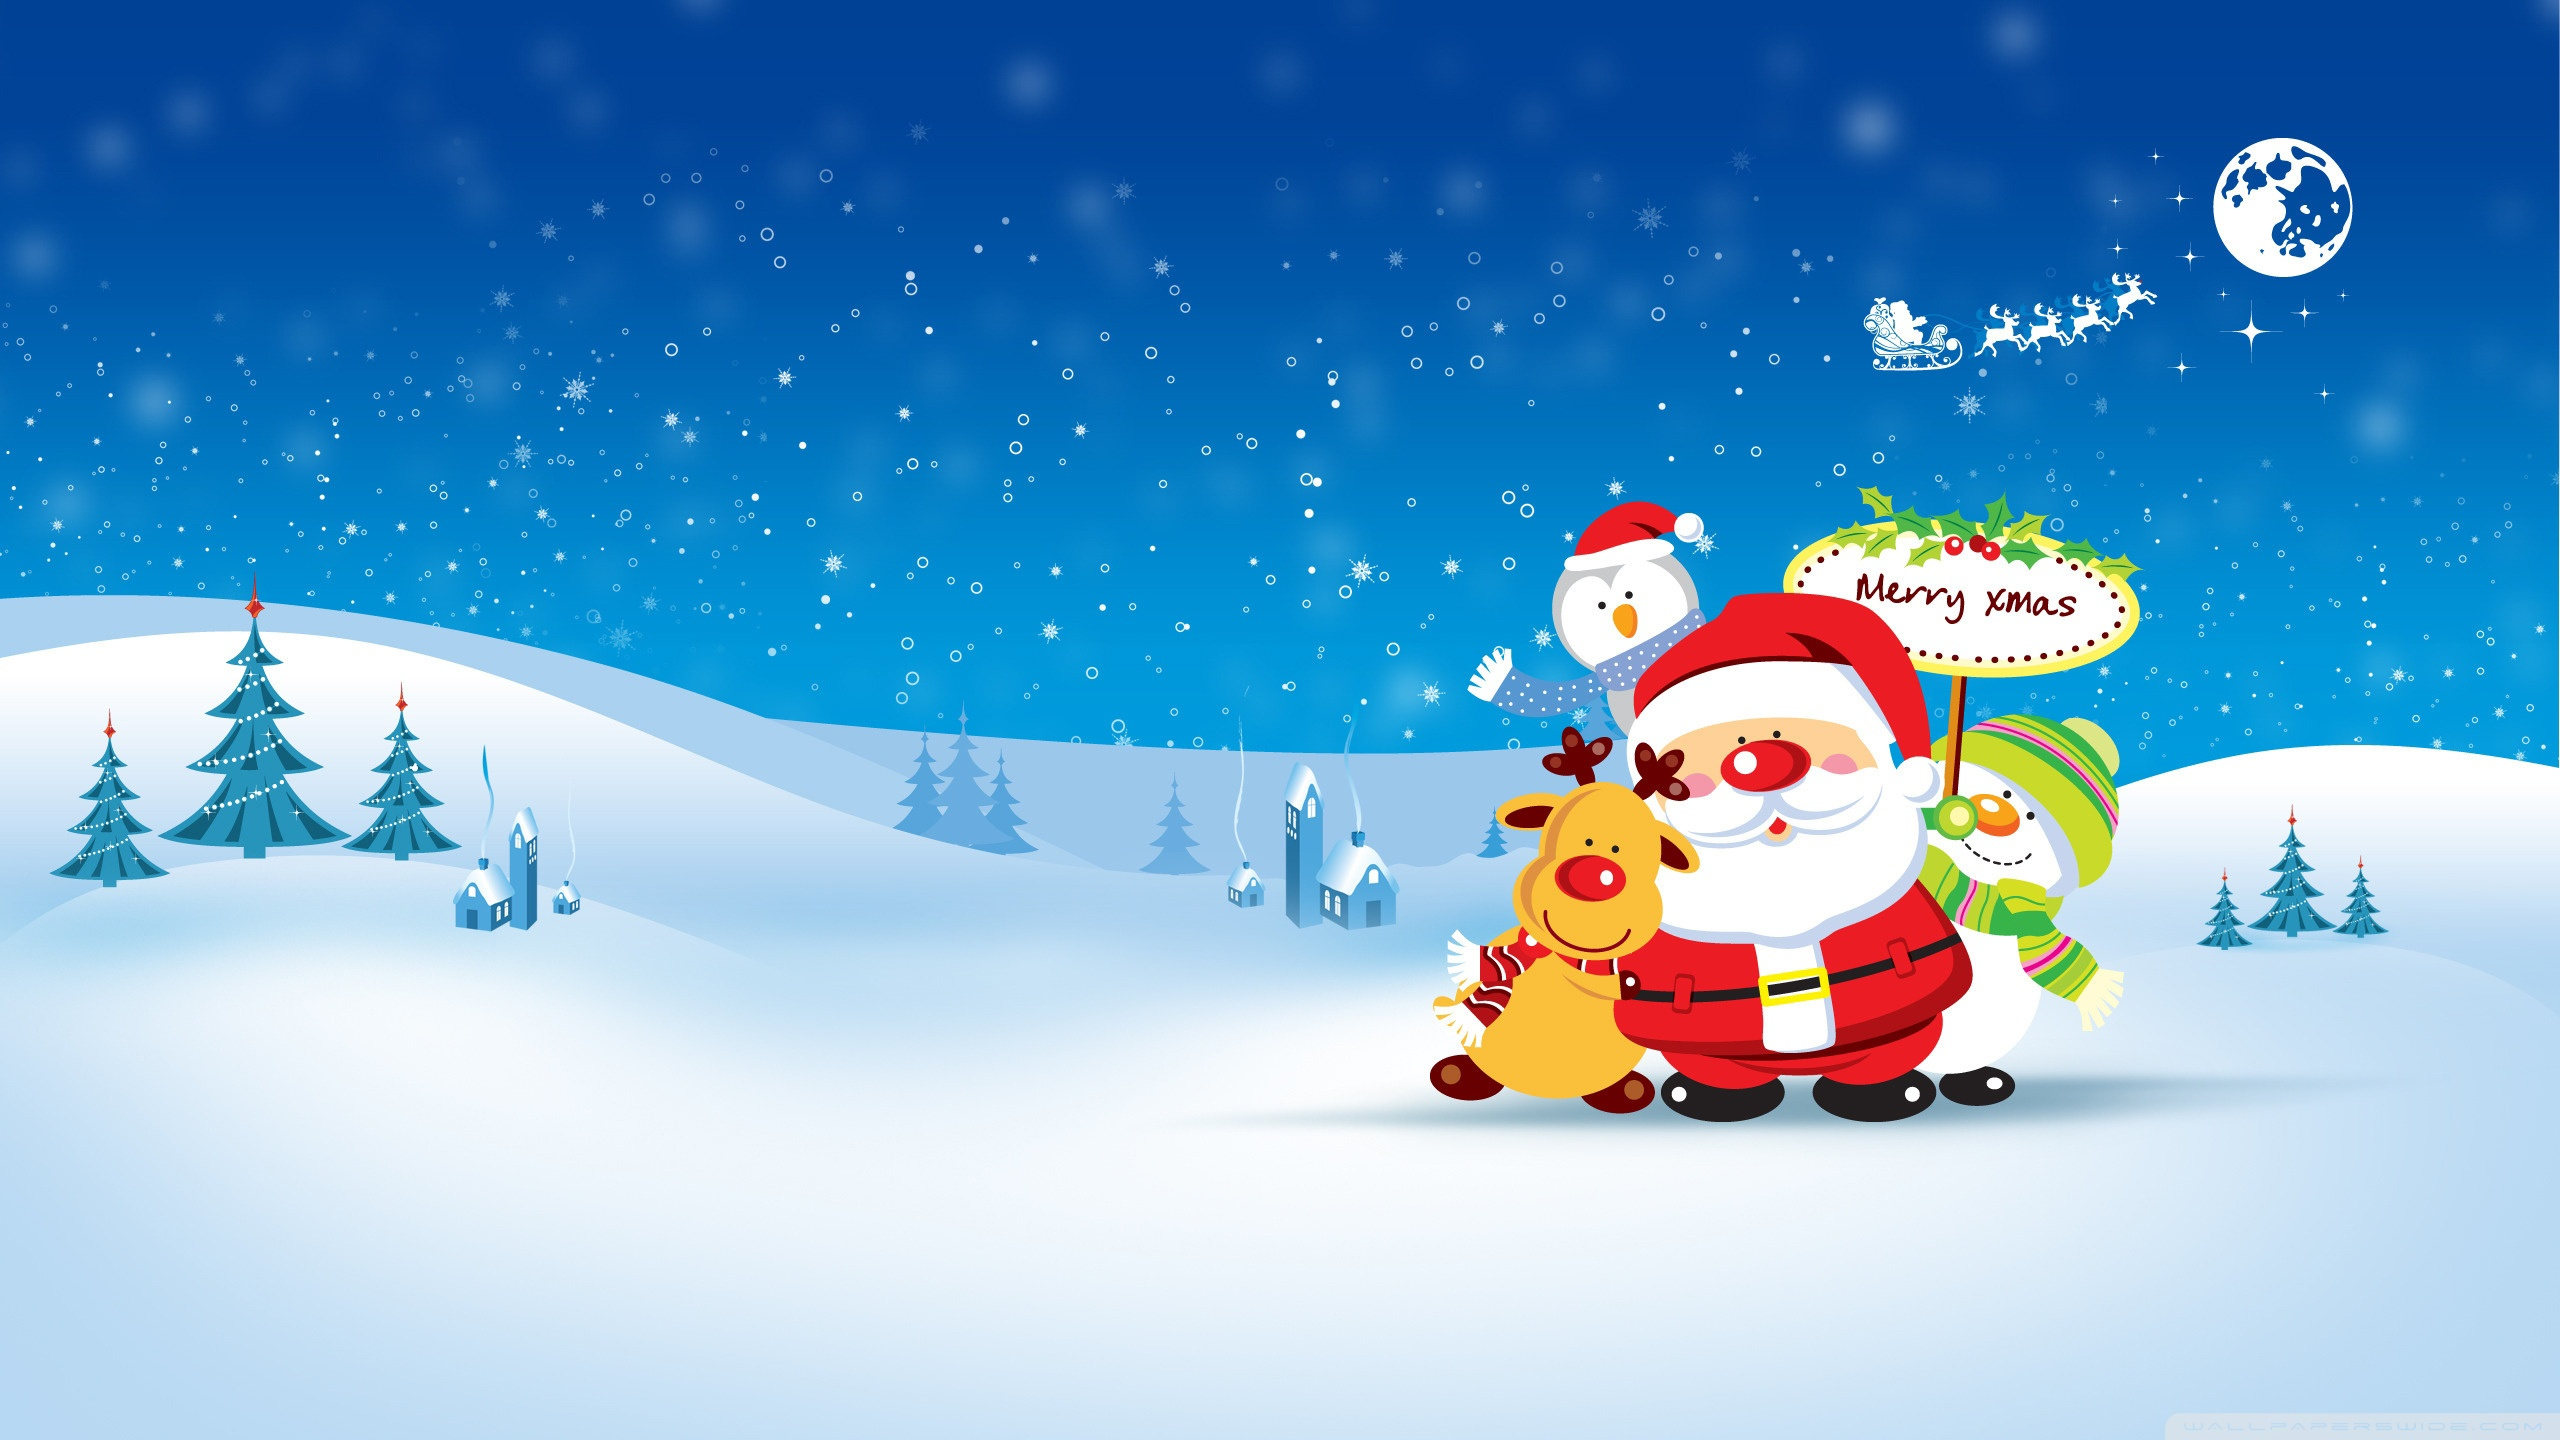 Merry Xmas 4K HD Desktop Wallpaper for Dual Monitor Desktops 2560x1440